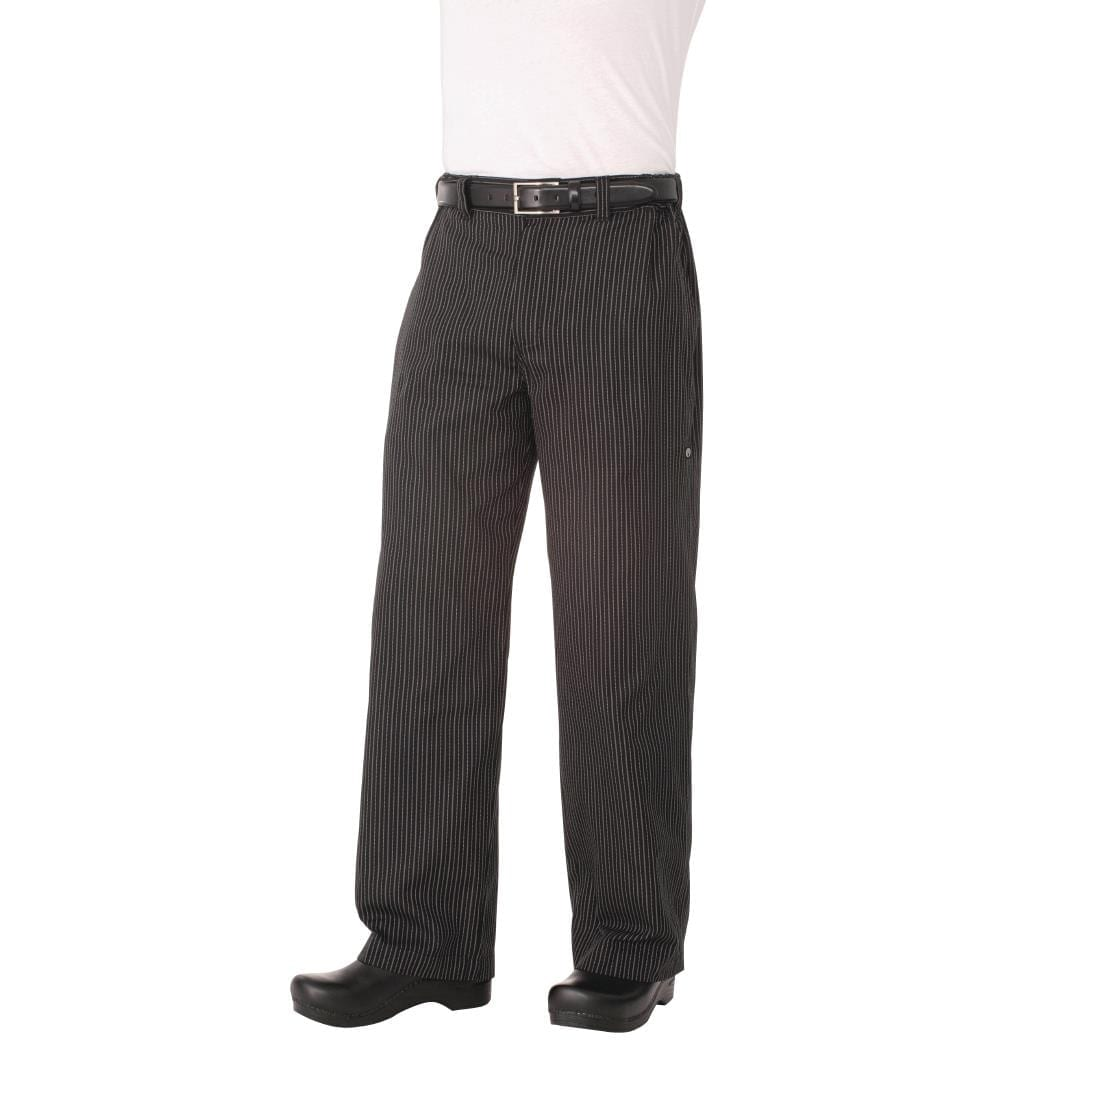 Chef Works Unisex Professional Series Chefs Trousers Grey Herringbone Stripe XS